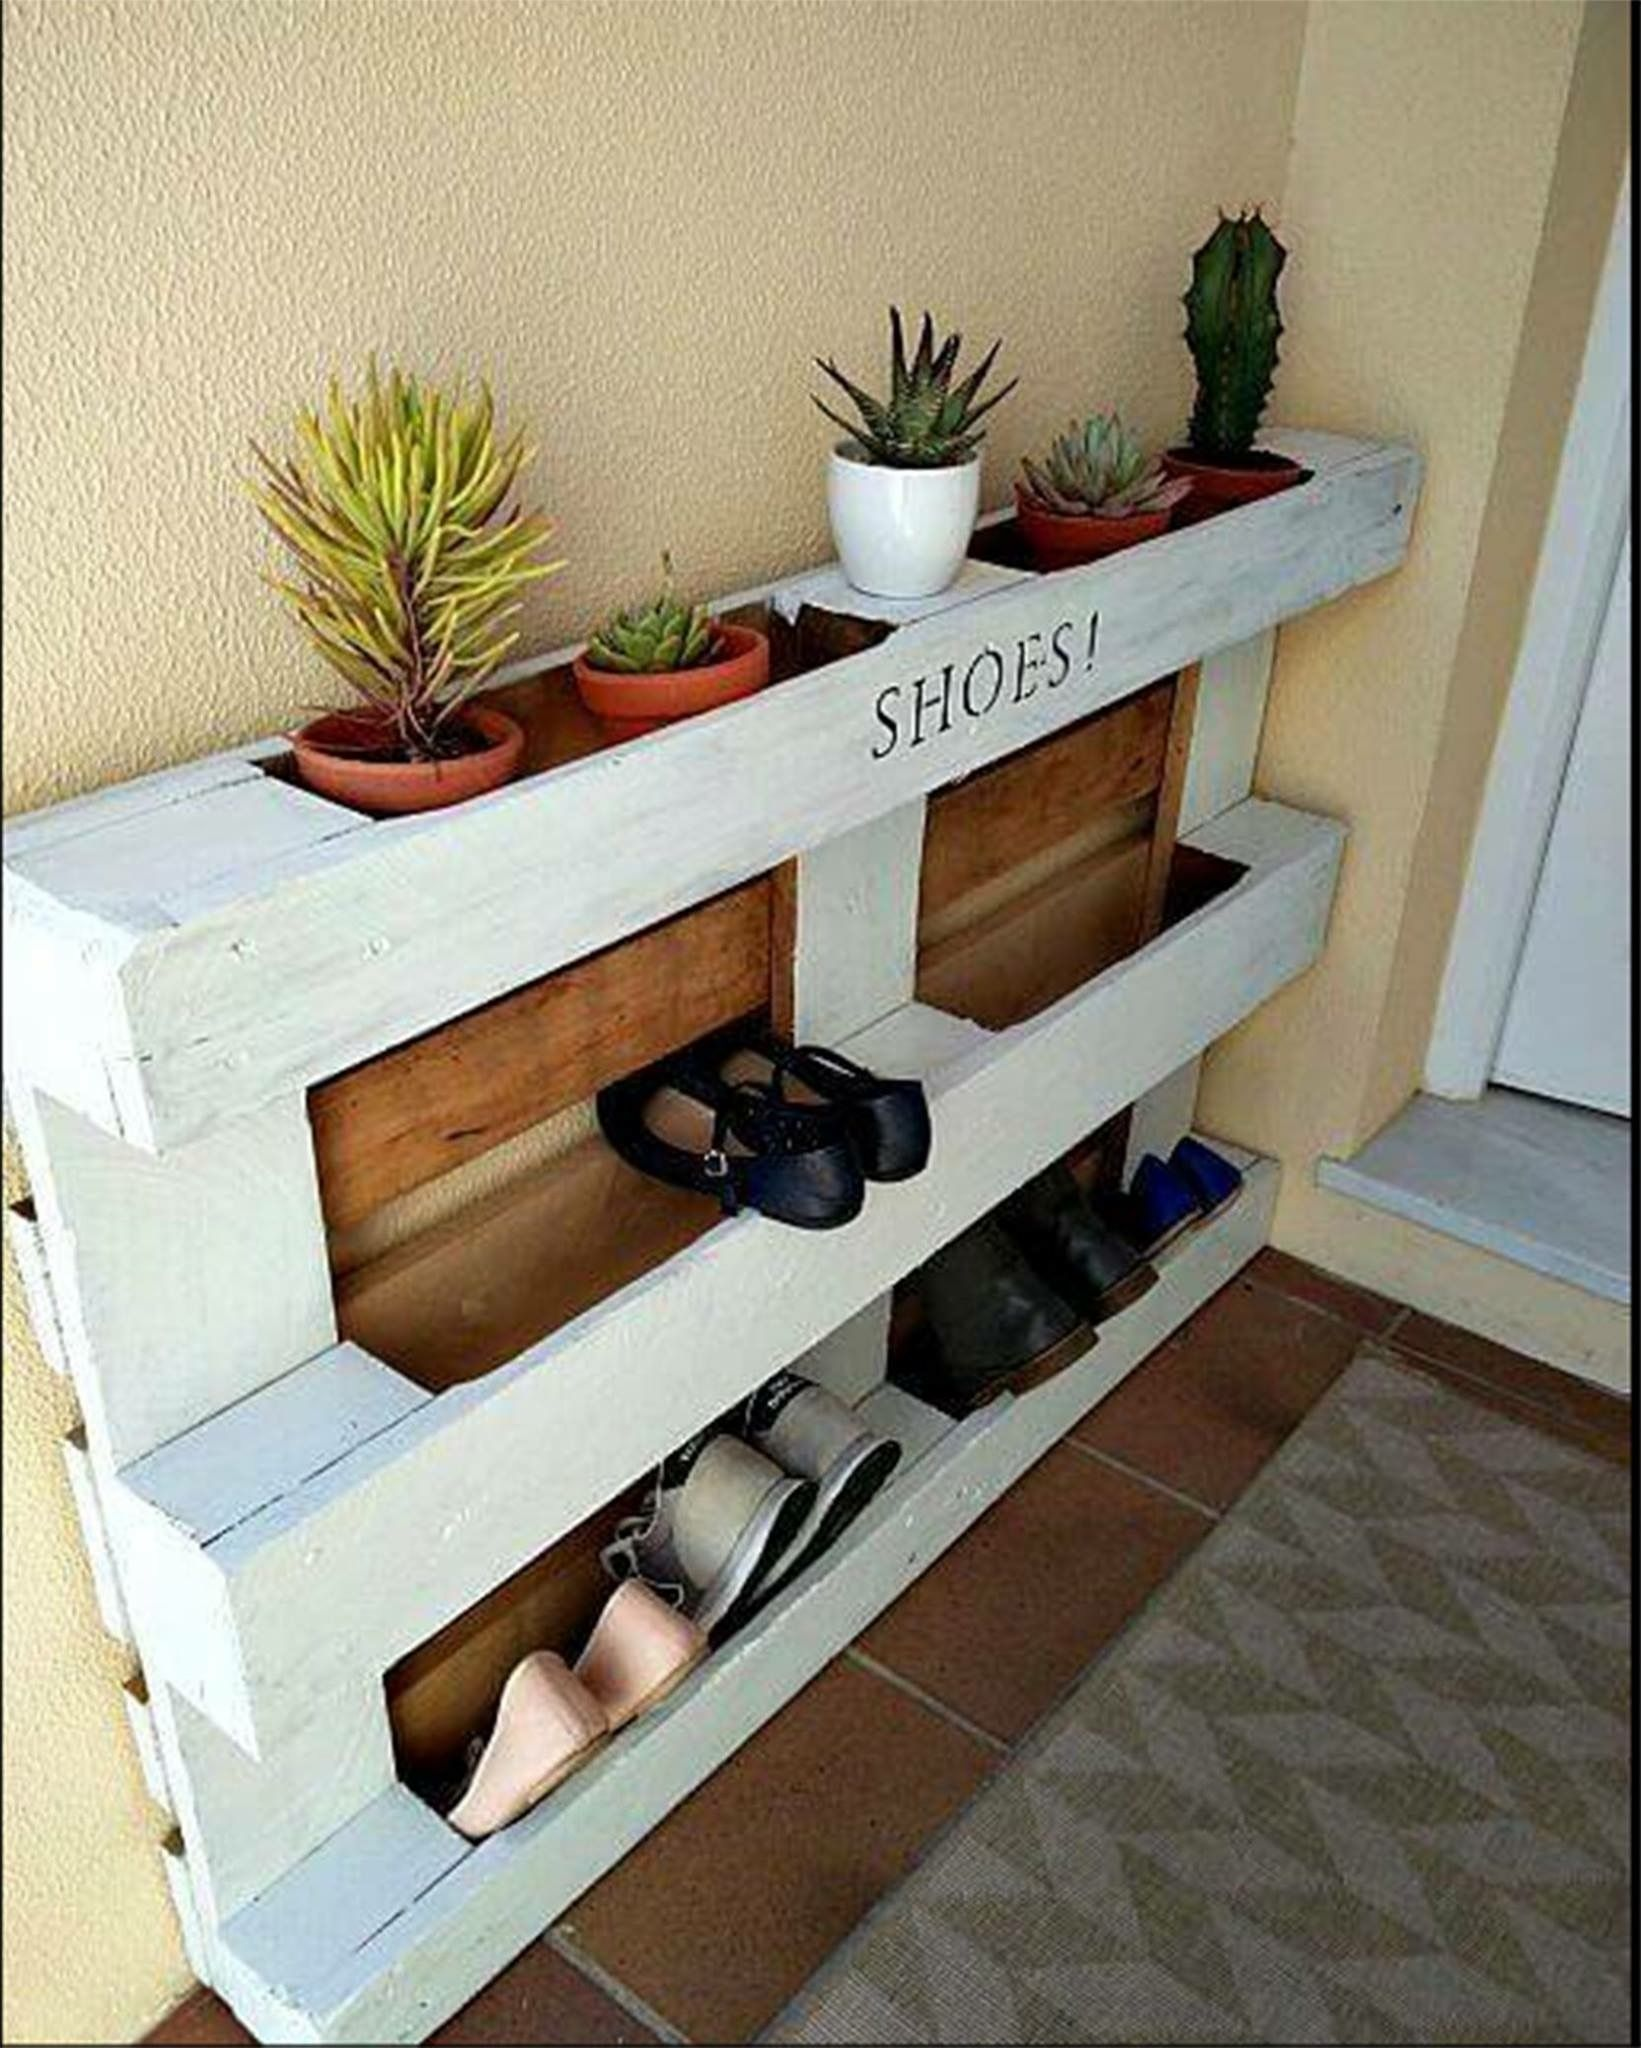 skid furniture ideas. Awesome Up-cycled Pallets Furniture Ideas Recycled Pallet Skid L